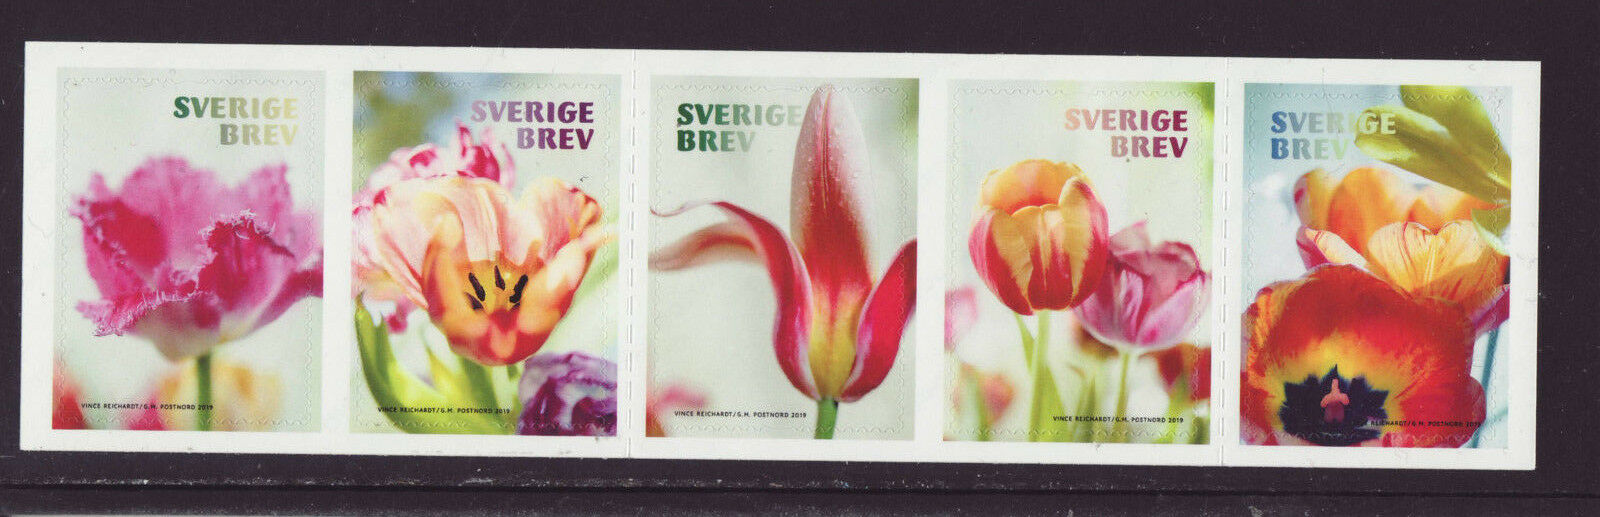 Sweden- Tulips (January 10, 2019)